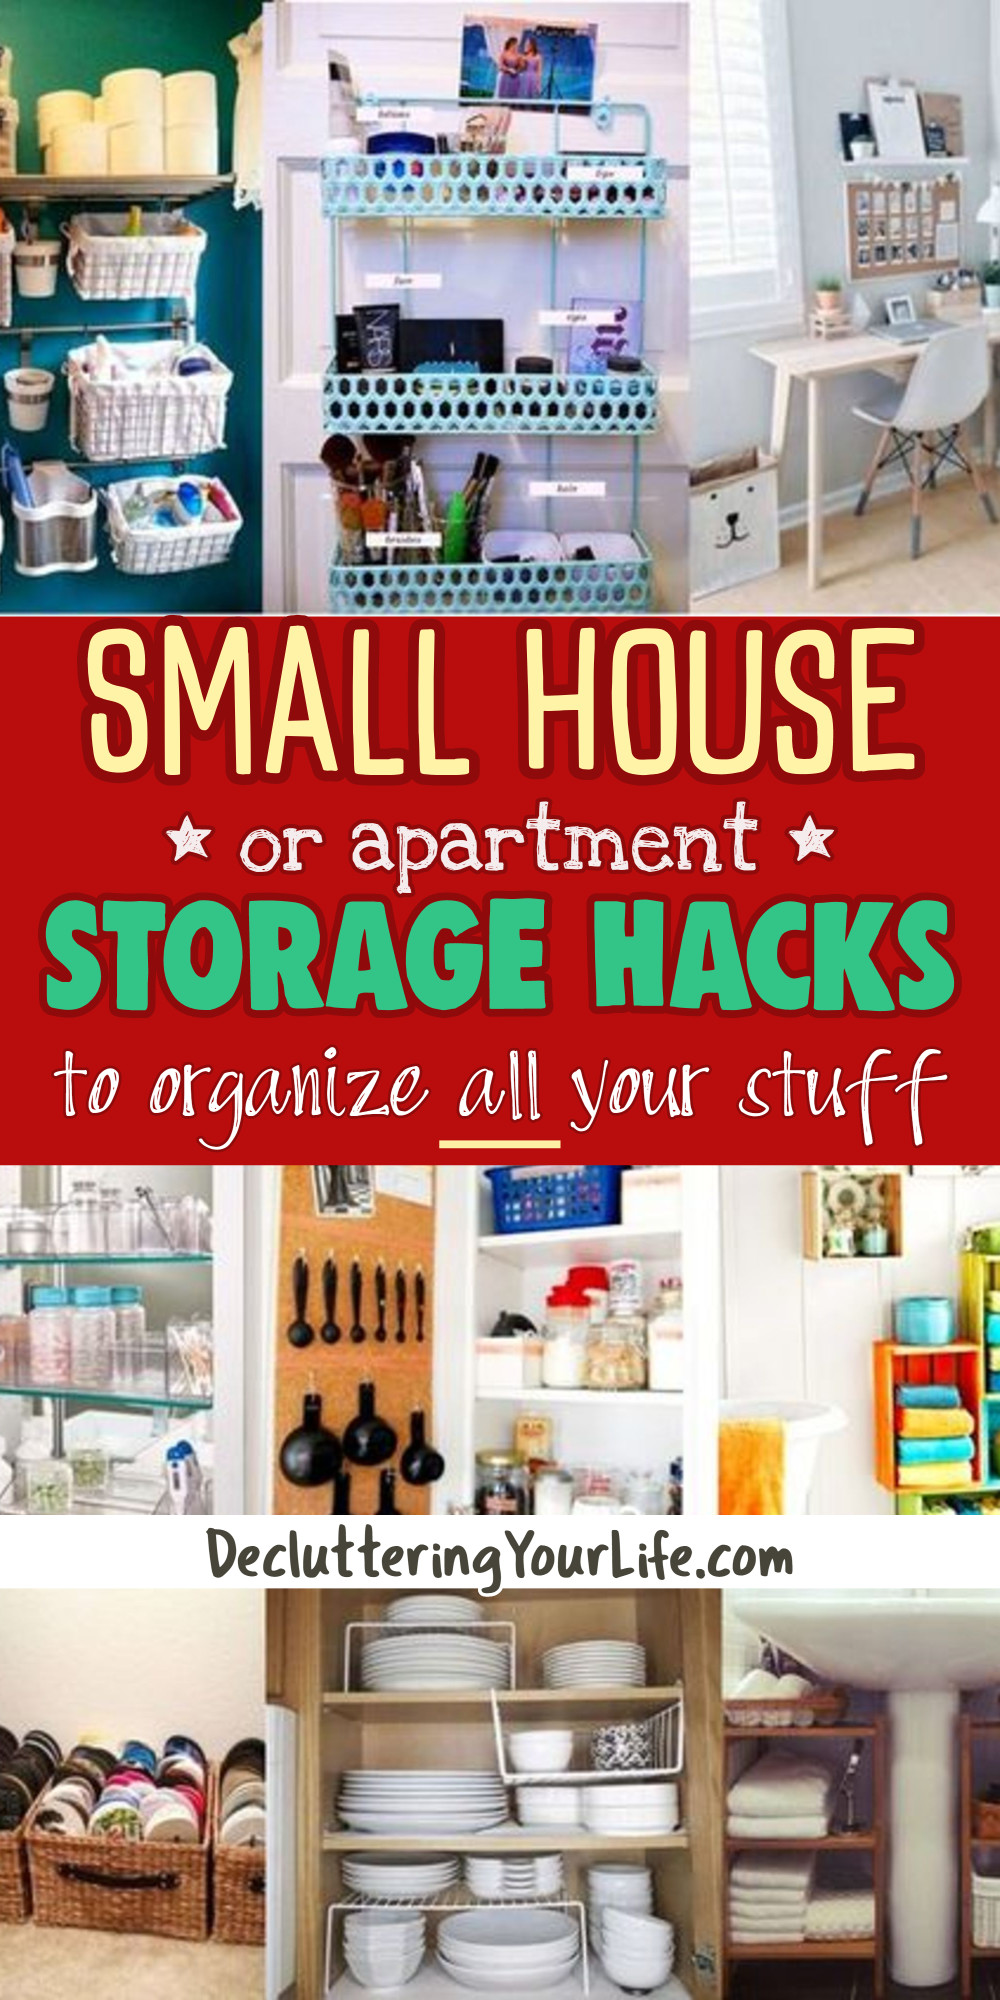 Small House Storage Solutions and Clutter Control Inspiration - Tips from professional organizers: organizing ideas, declutter and organize and decluttering ideas when feeling overwhelmed, how to organize your home, get organized at home, storage and organization ideas for the home, getting organized help, tips and tricks plus home organization hacks from Decluttering Your Life  - Let's Get Organized!